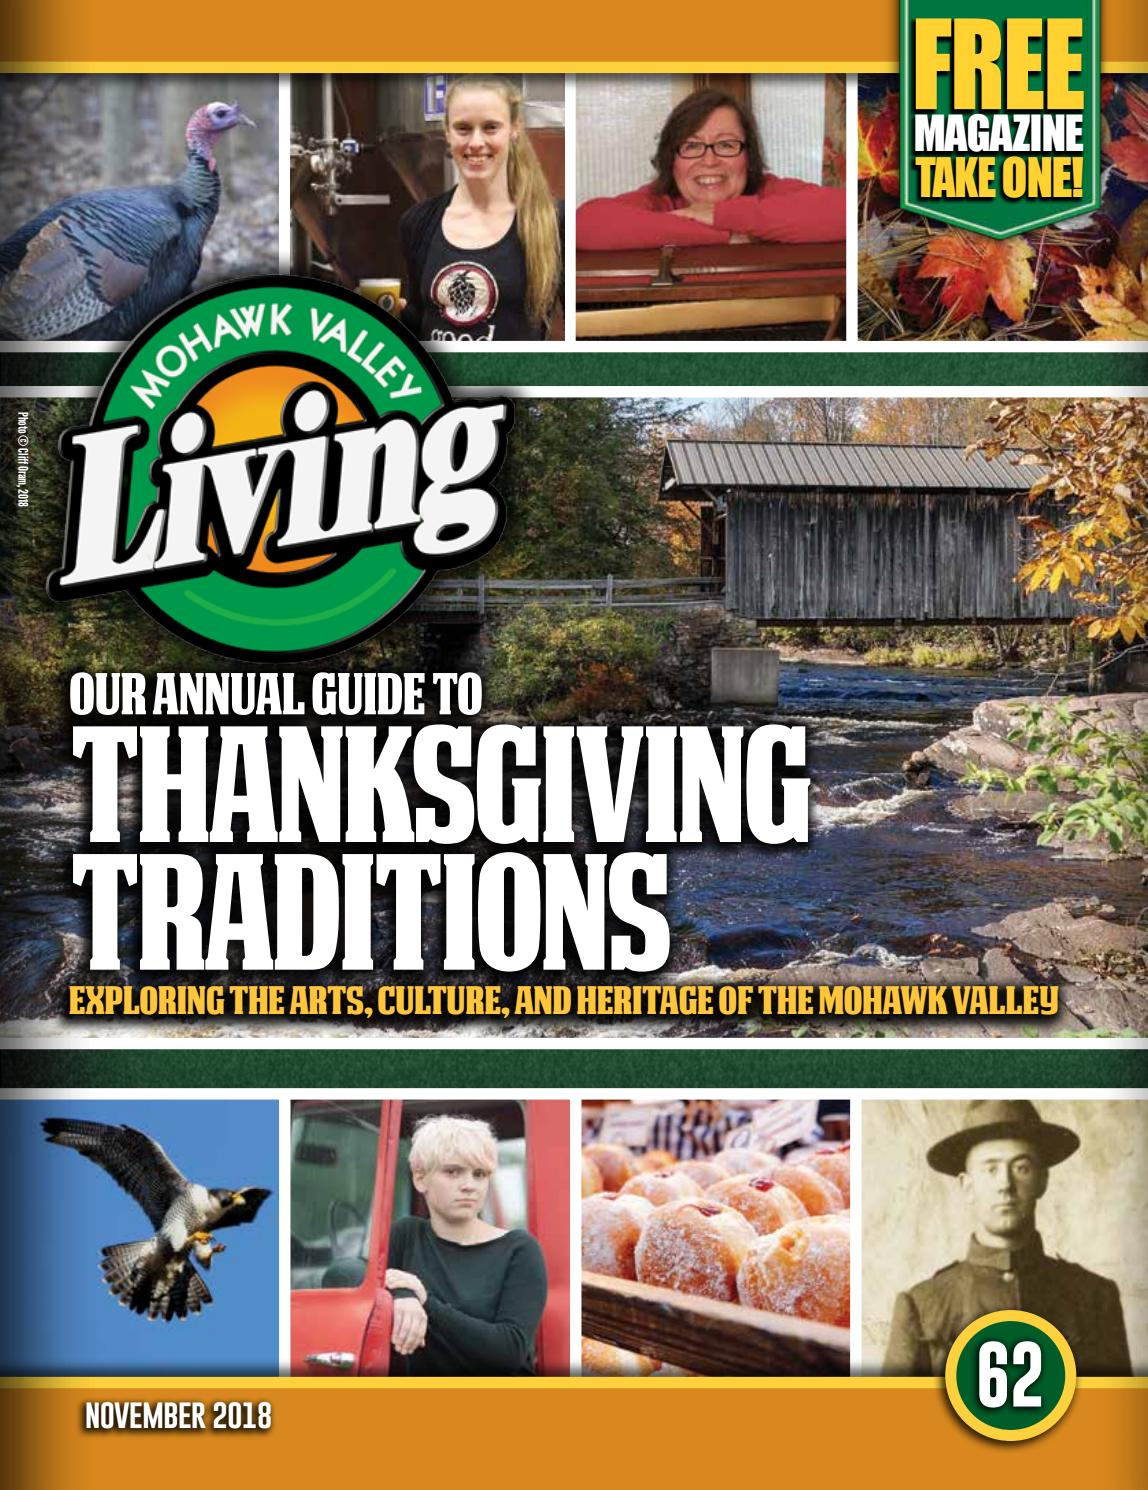 d1a62b77ab6c Mohawk Valley Living 62 November 2018 by Mohawk Valley Living - issuu